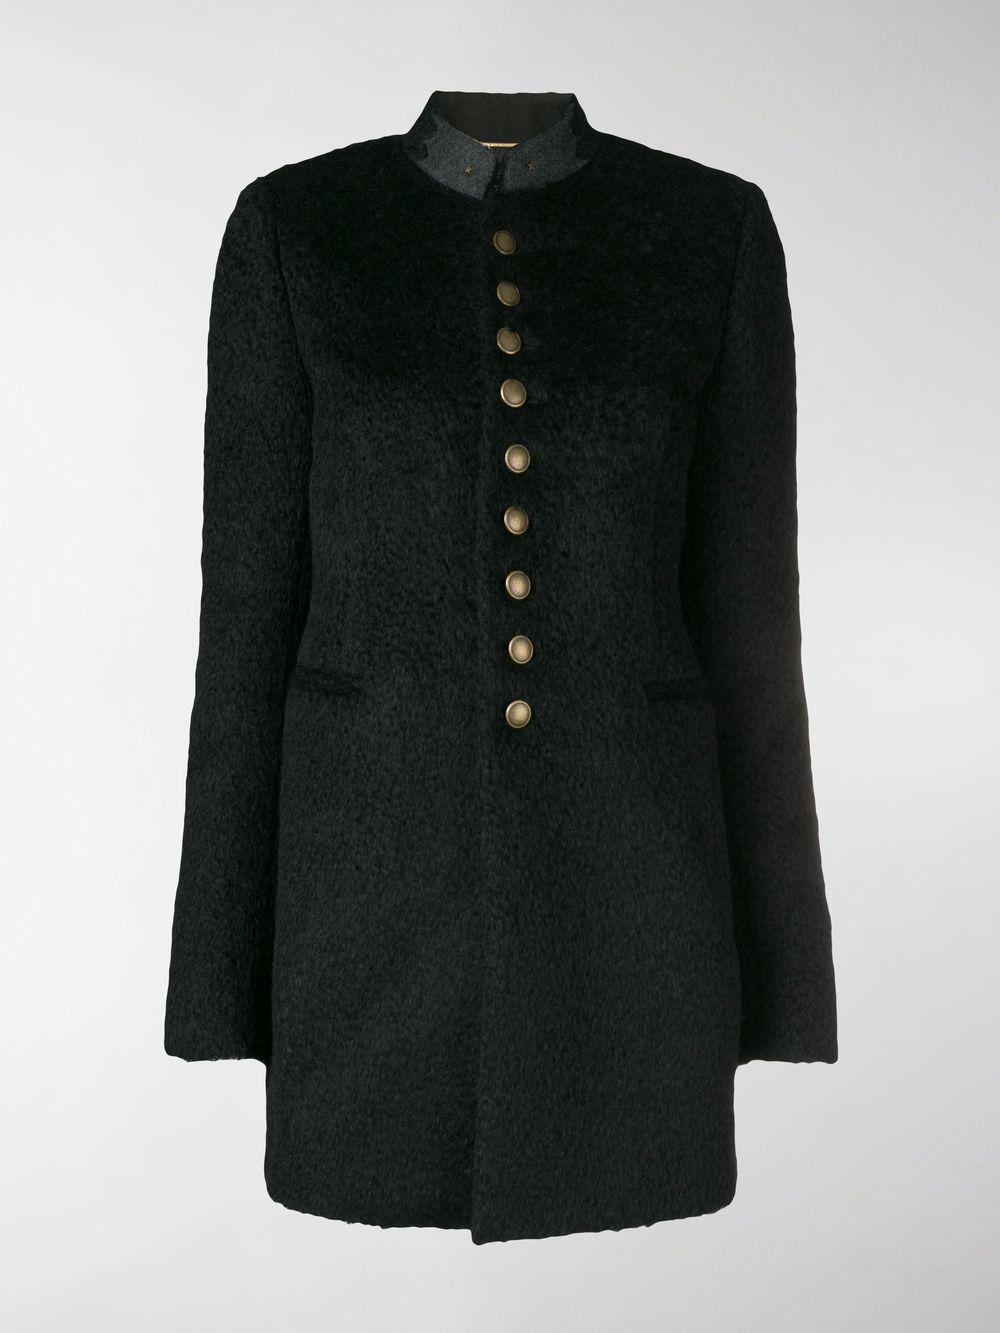 b7c6d5cb242 Saint Laurent Buttoned Military Coat in Black - Lyst